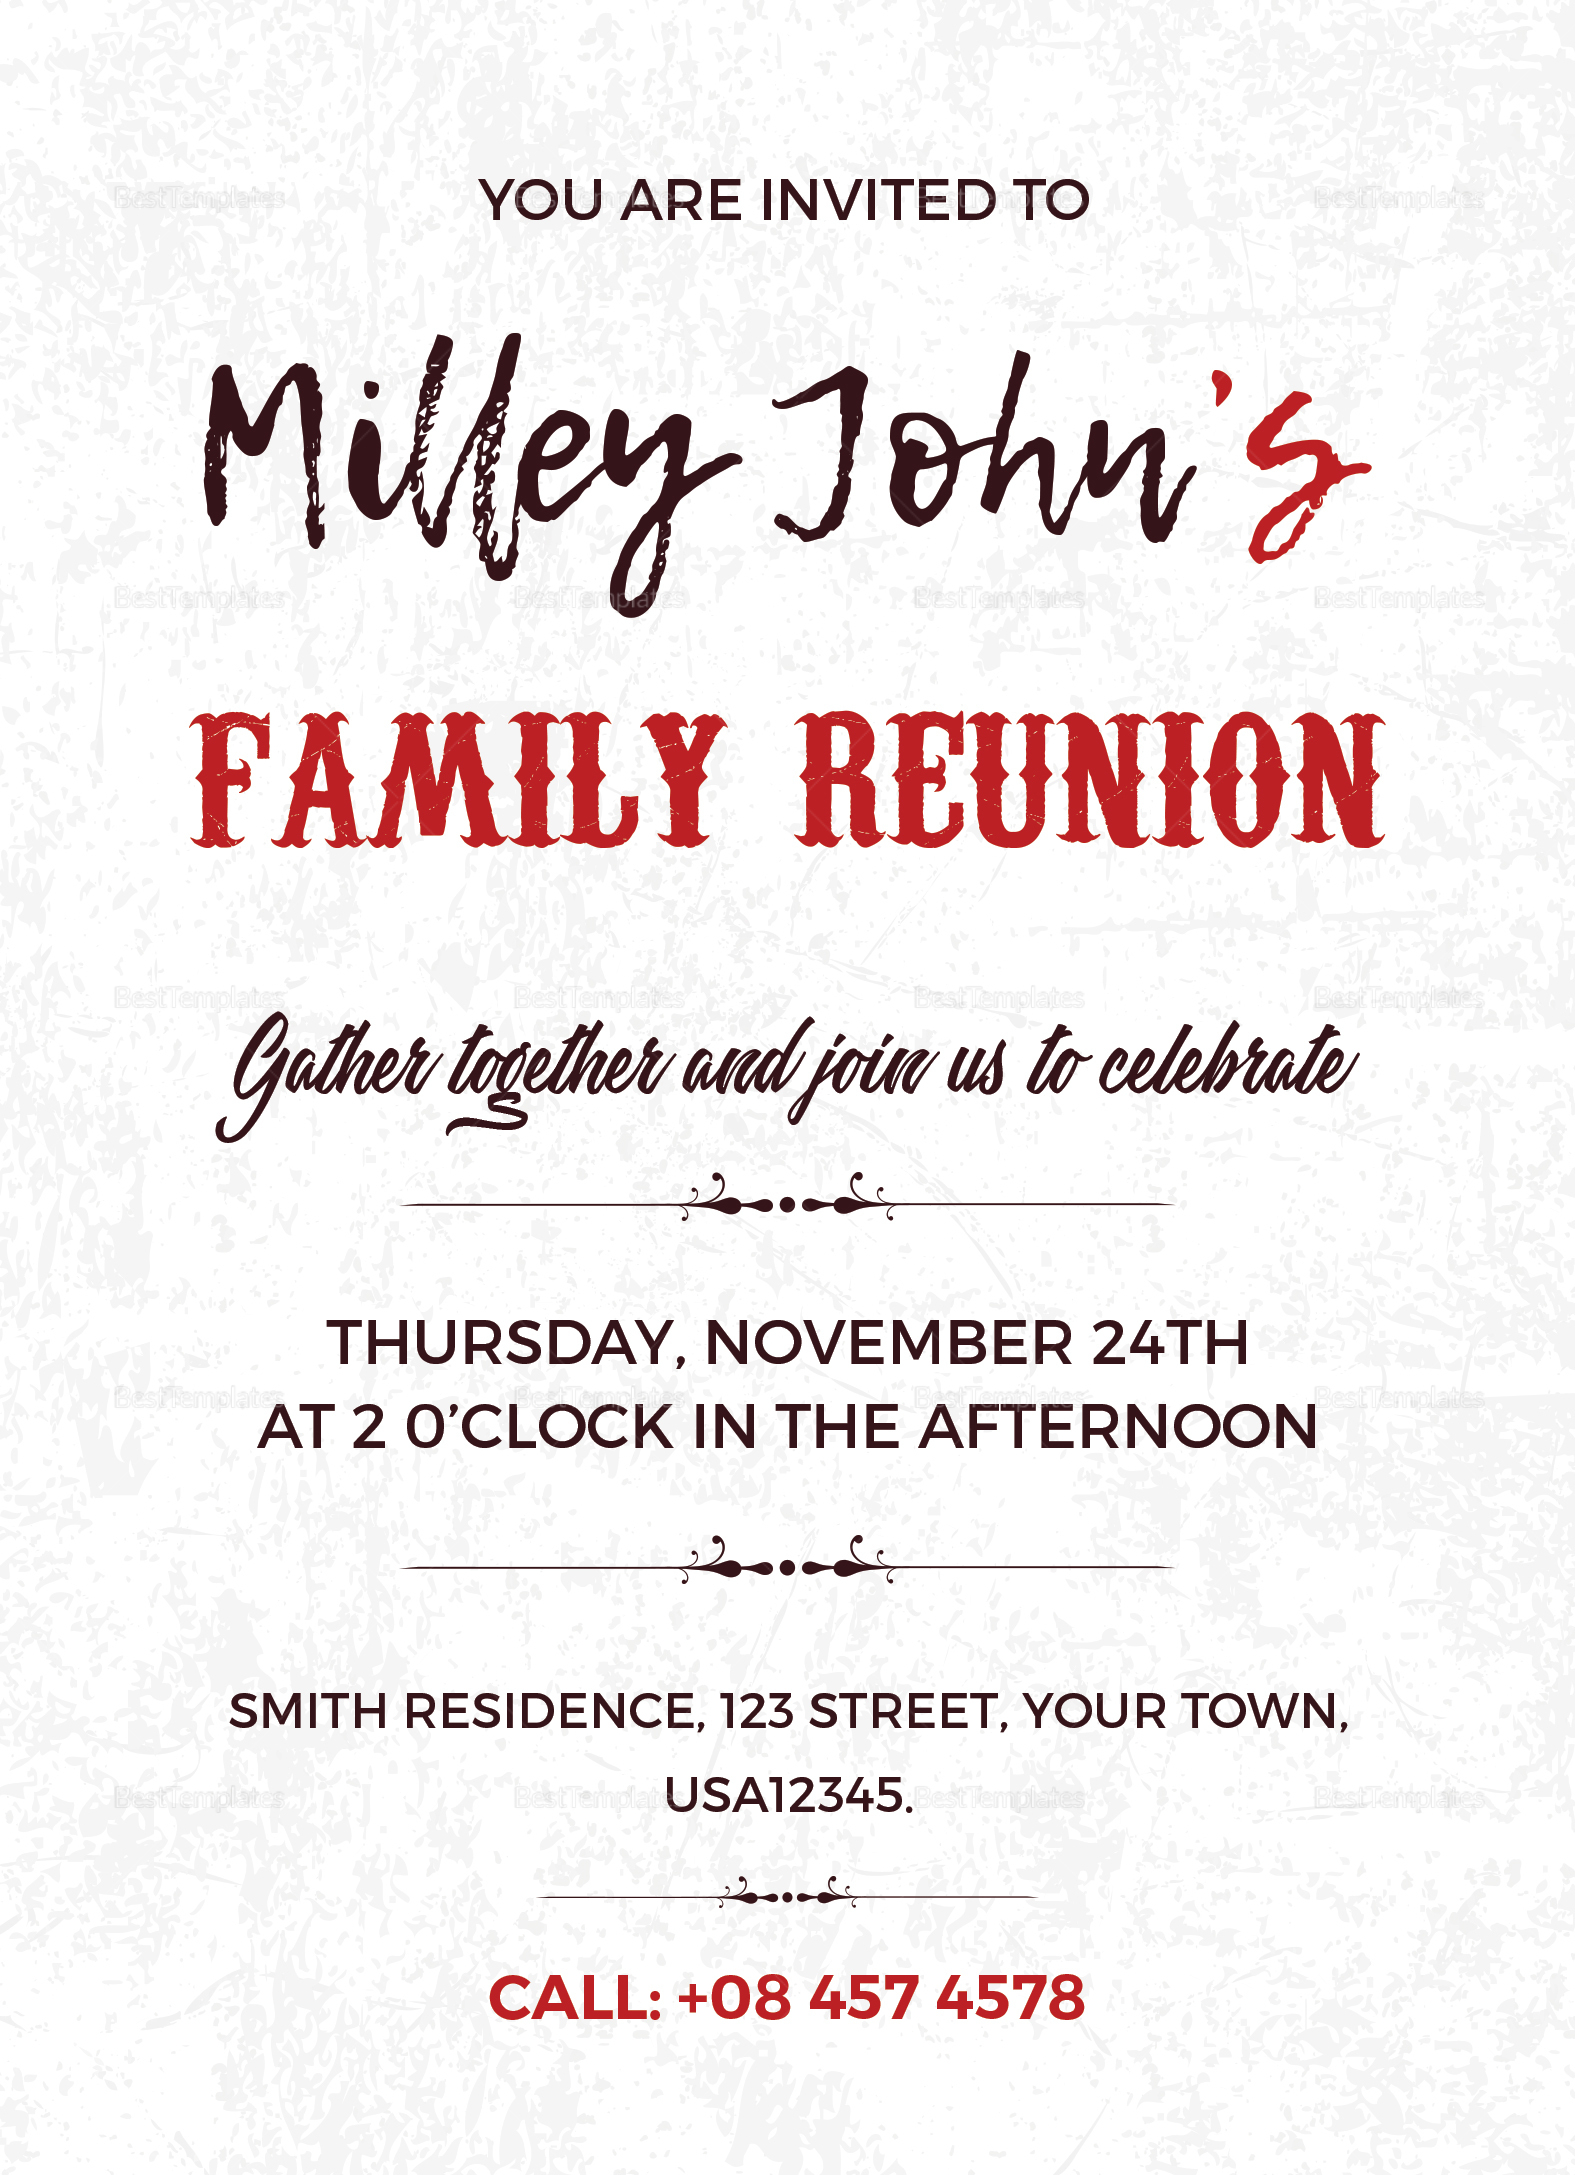 Family Reunion Invitation Card Design